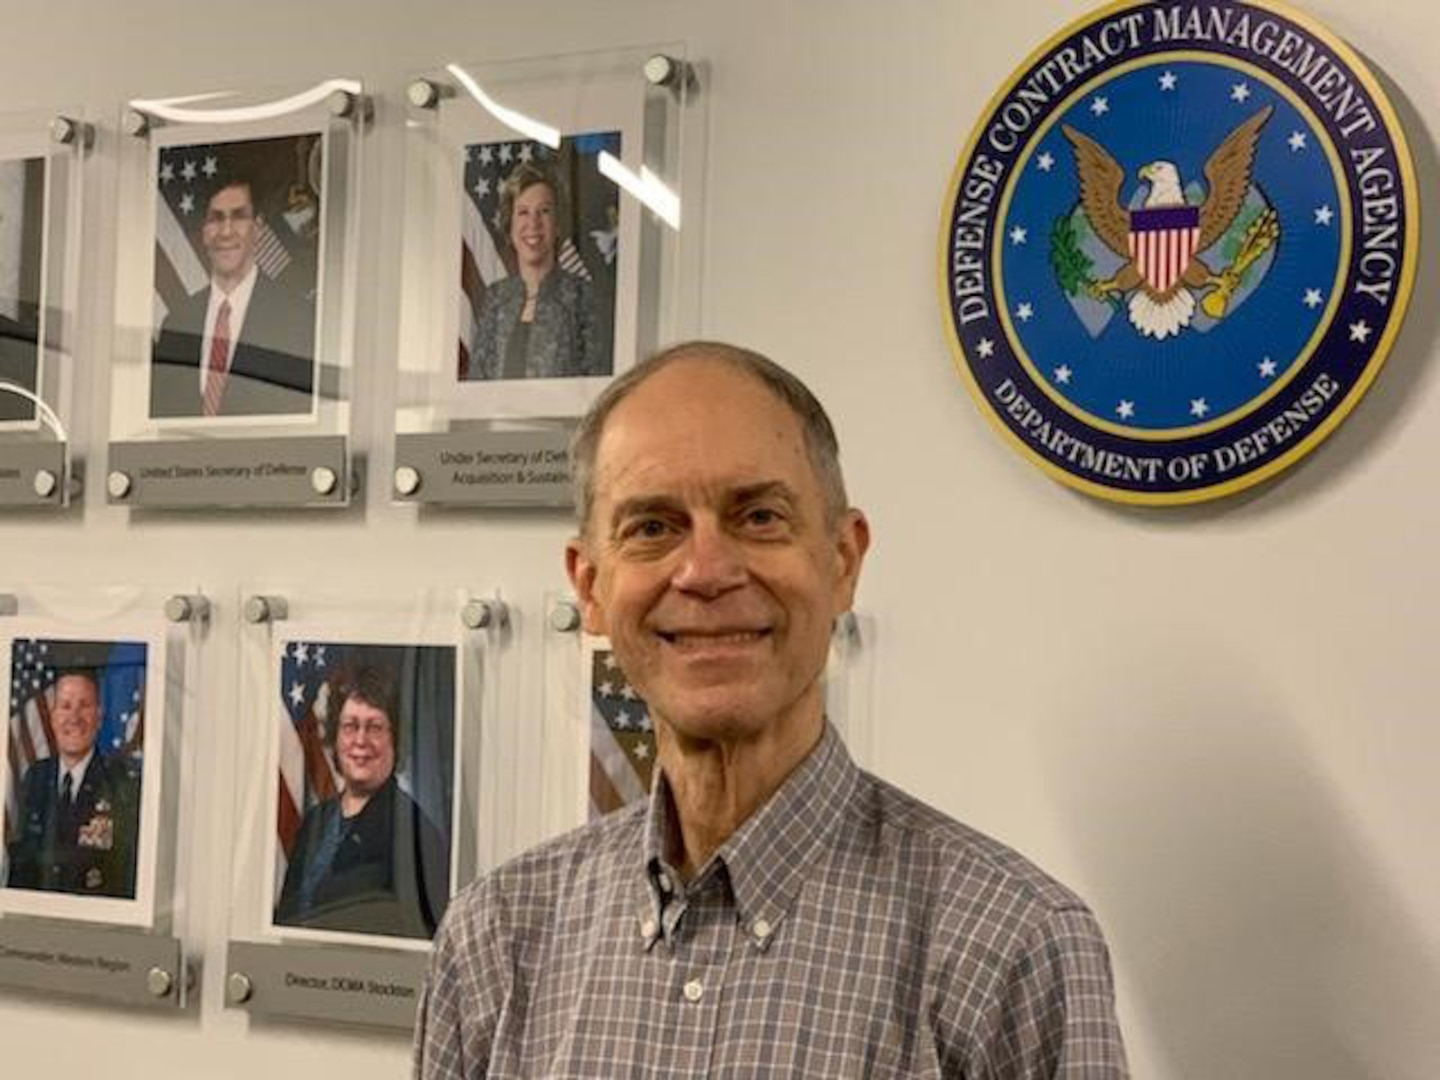 A man stands in an office hallway with a wall of portraits behind him